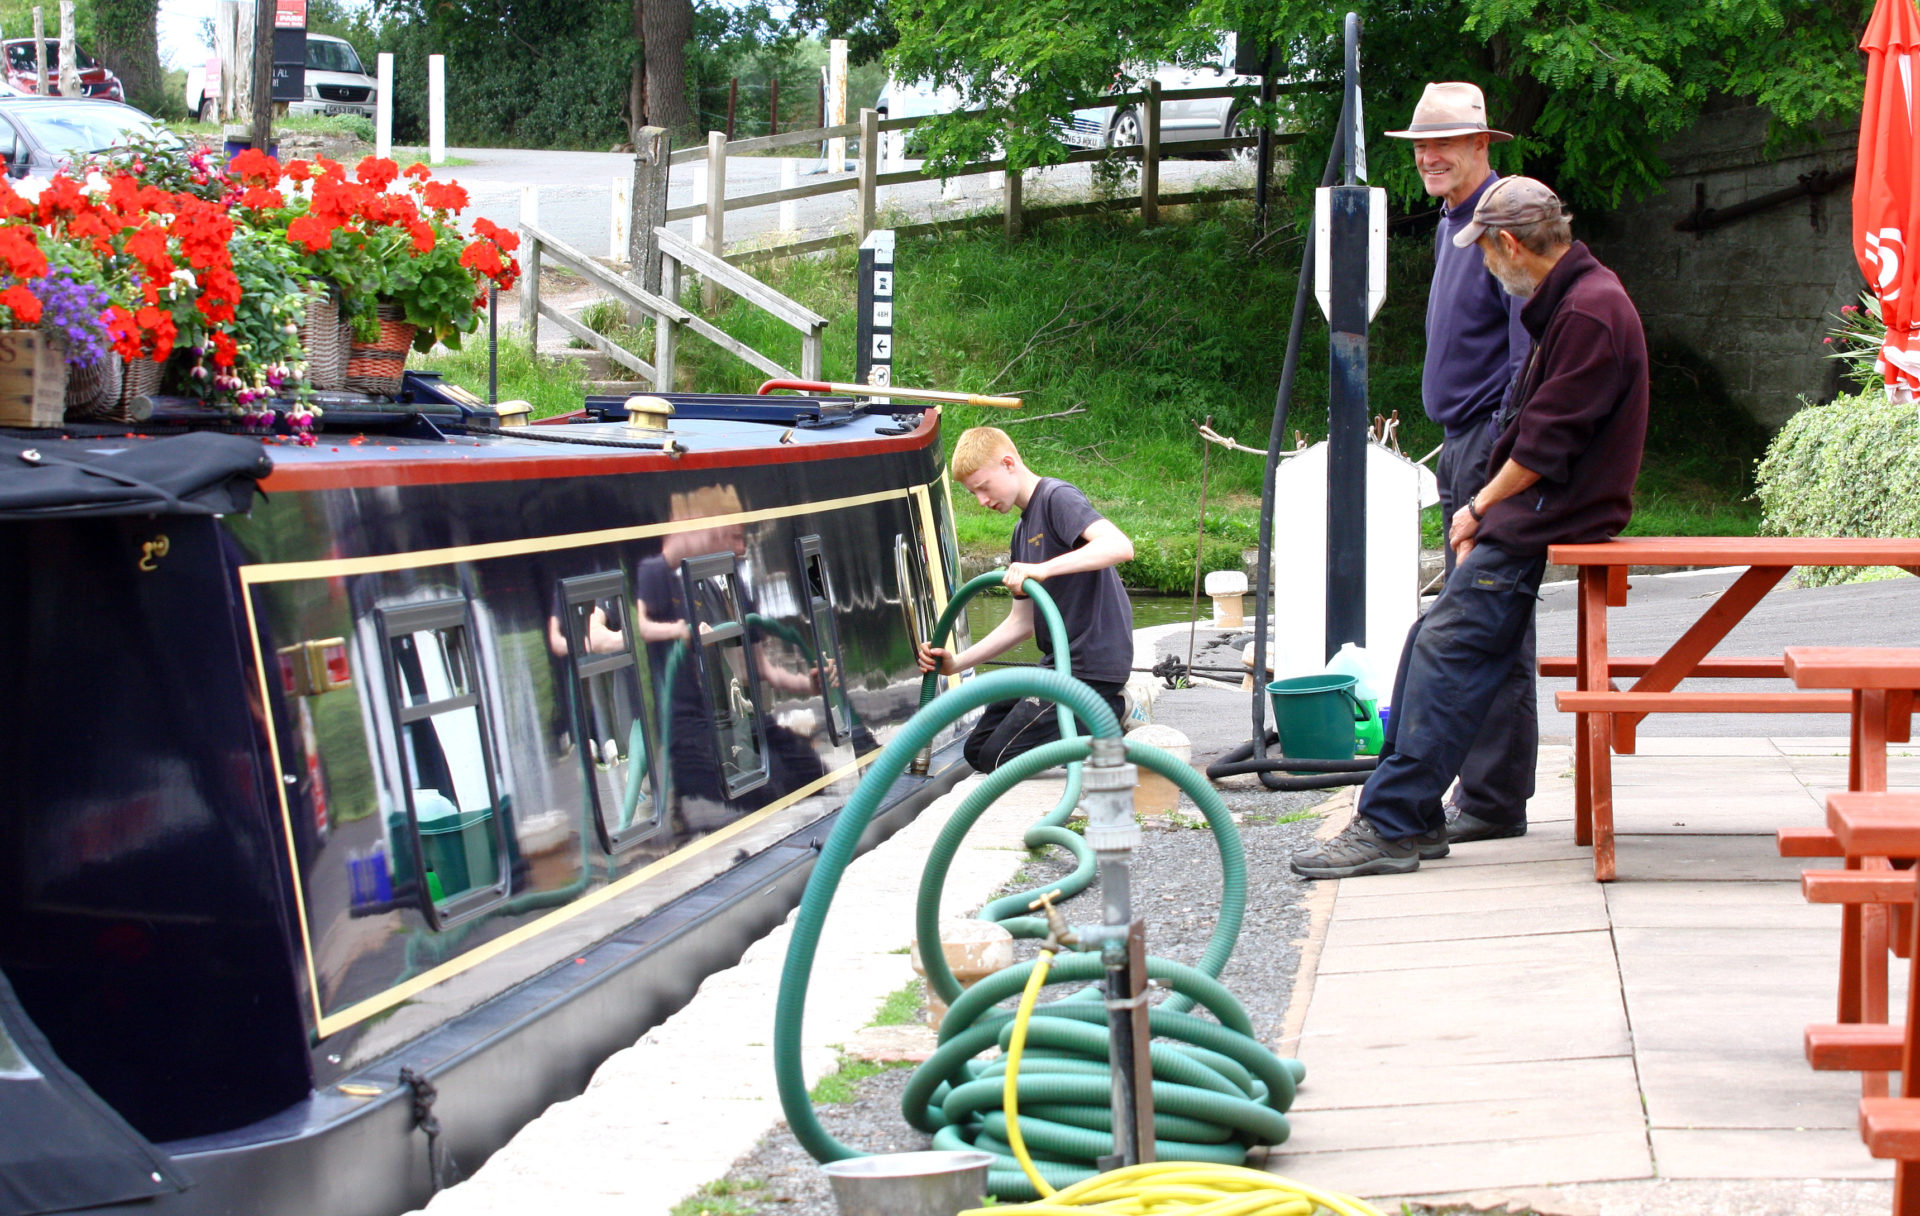 At Norbury for a pump out..... don't ask of what ! Boaters will know.